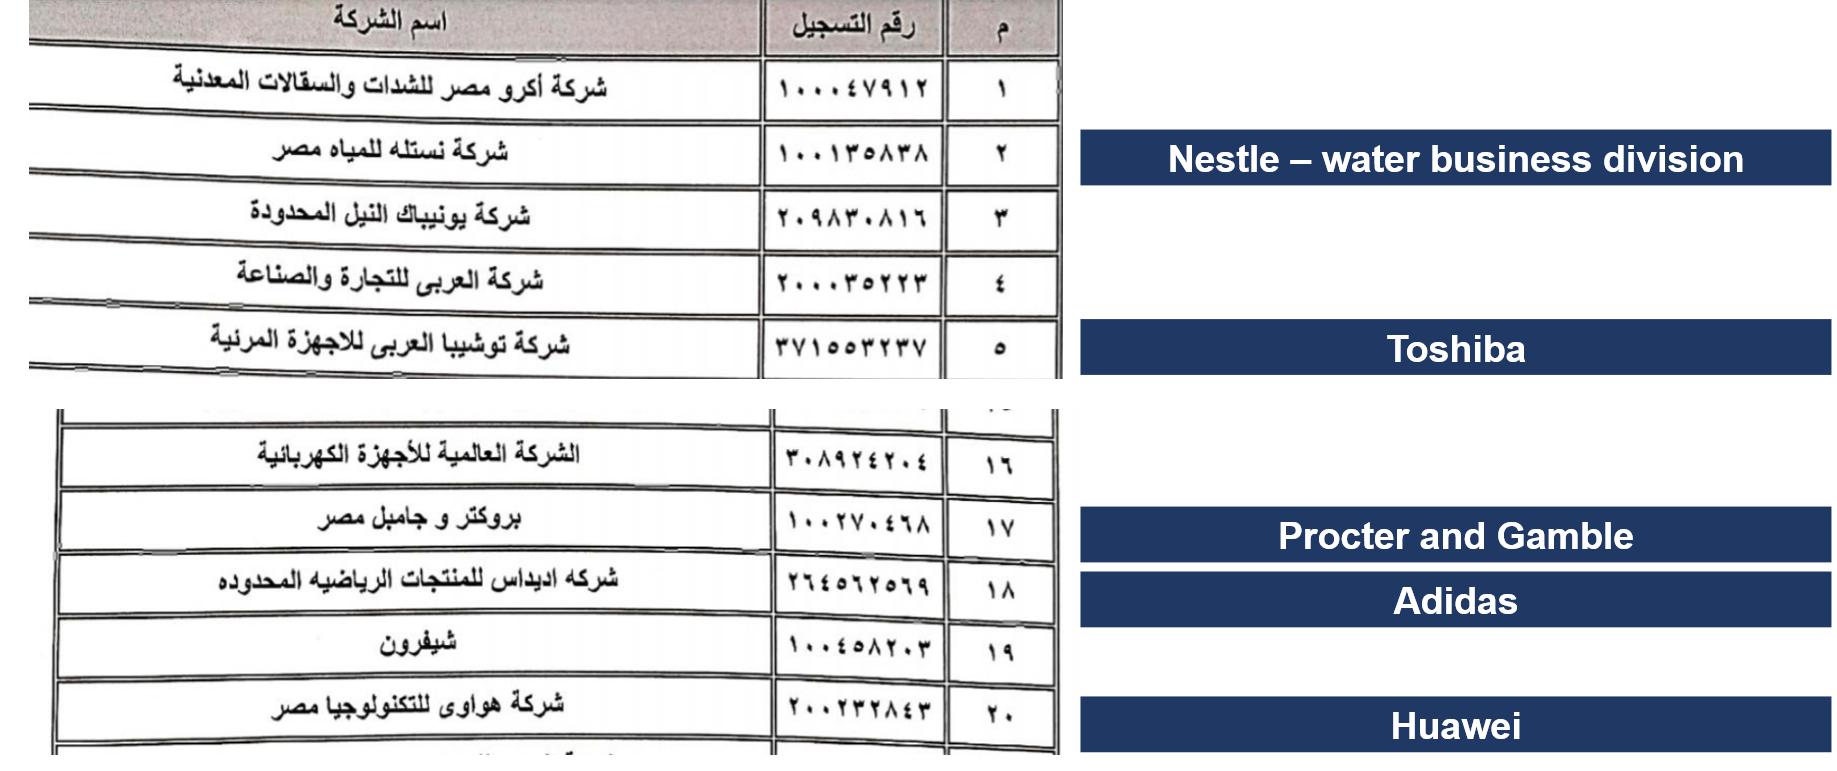 List of 134 companies mostly includes the biggest companies operating in Egypt.